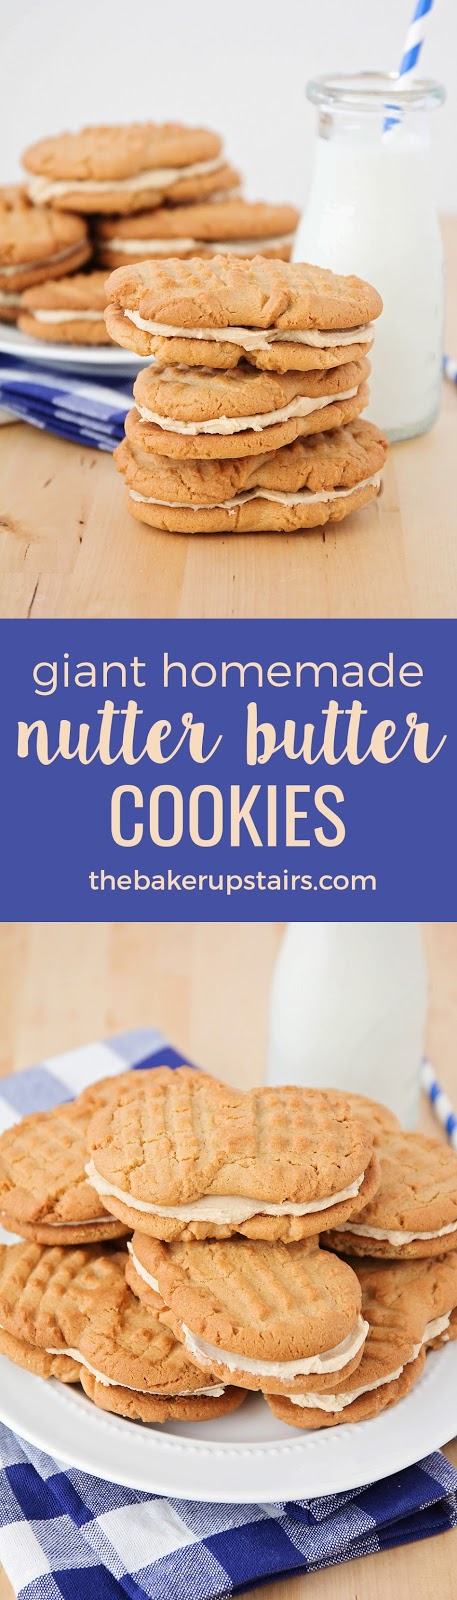 These giant homemade nutter butter cookies are better than store-bought, and so easy to make!